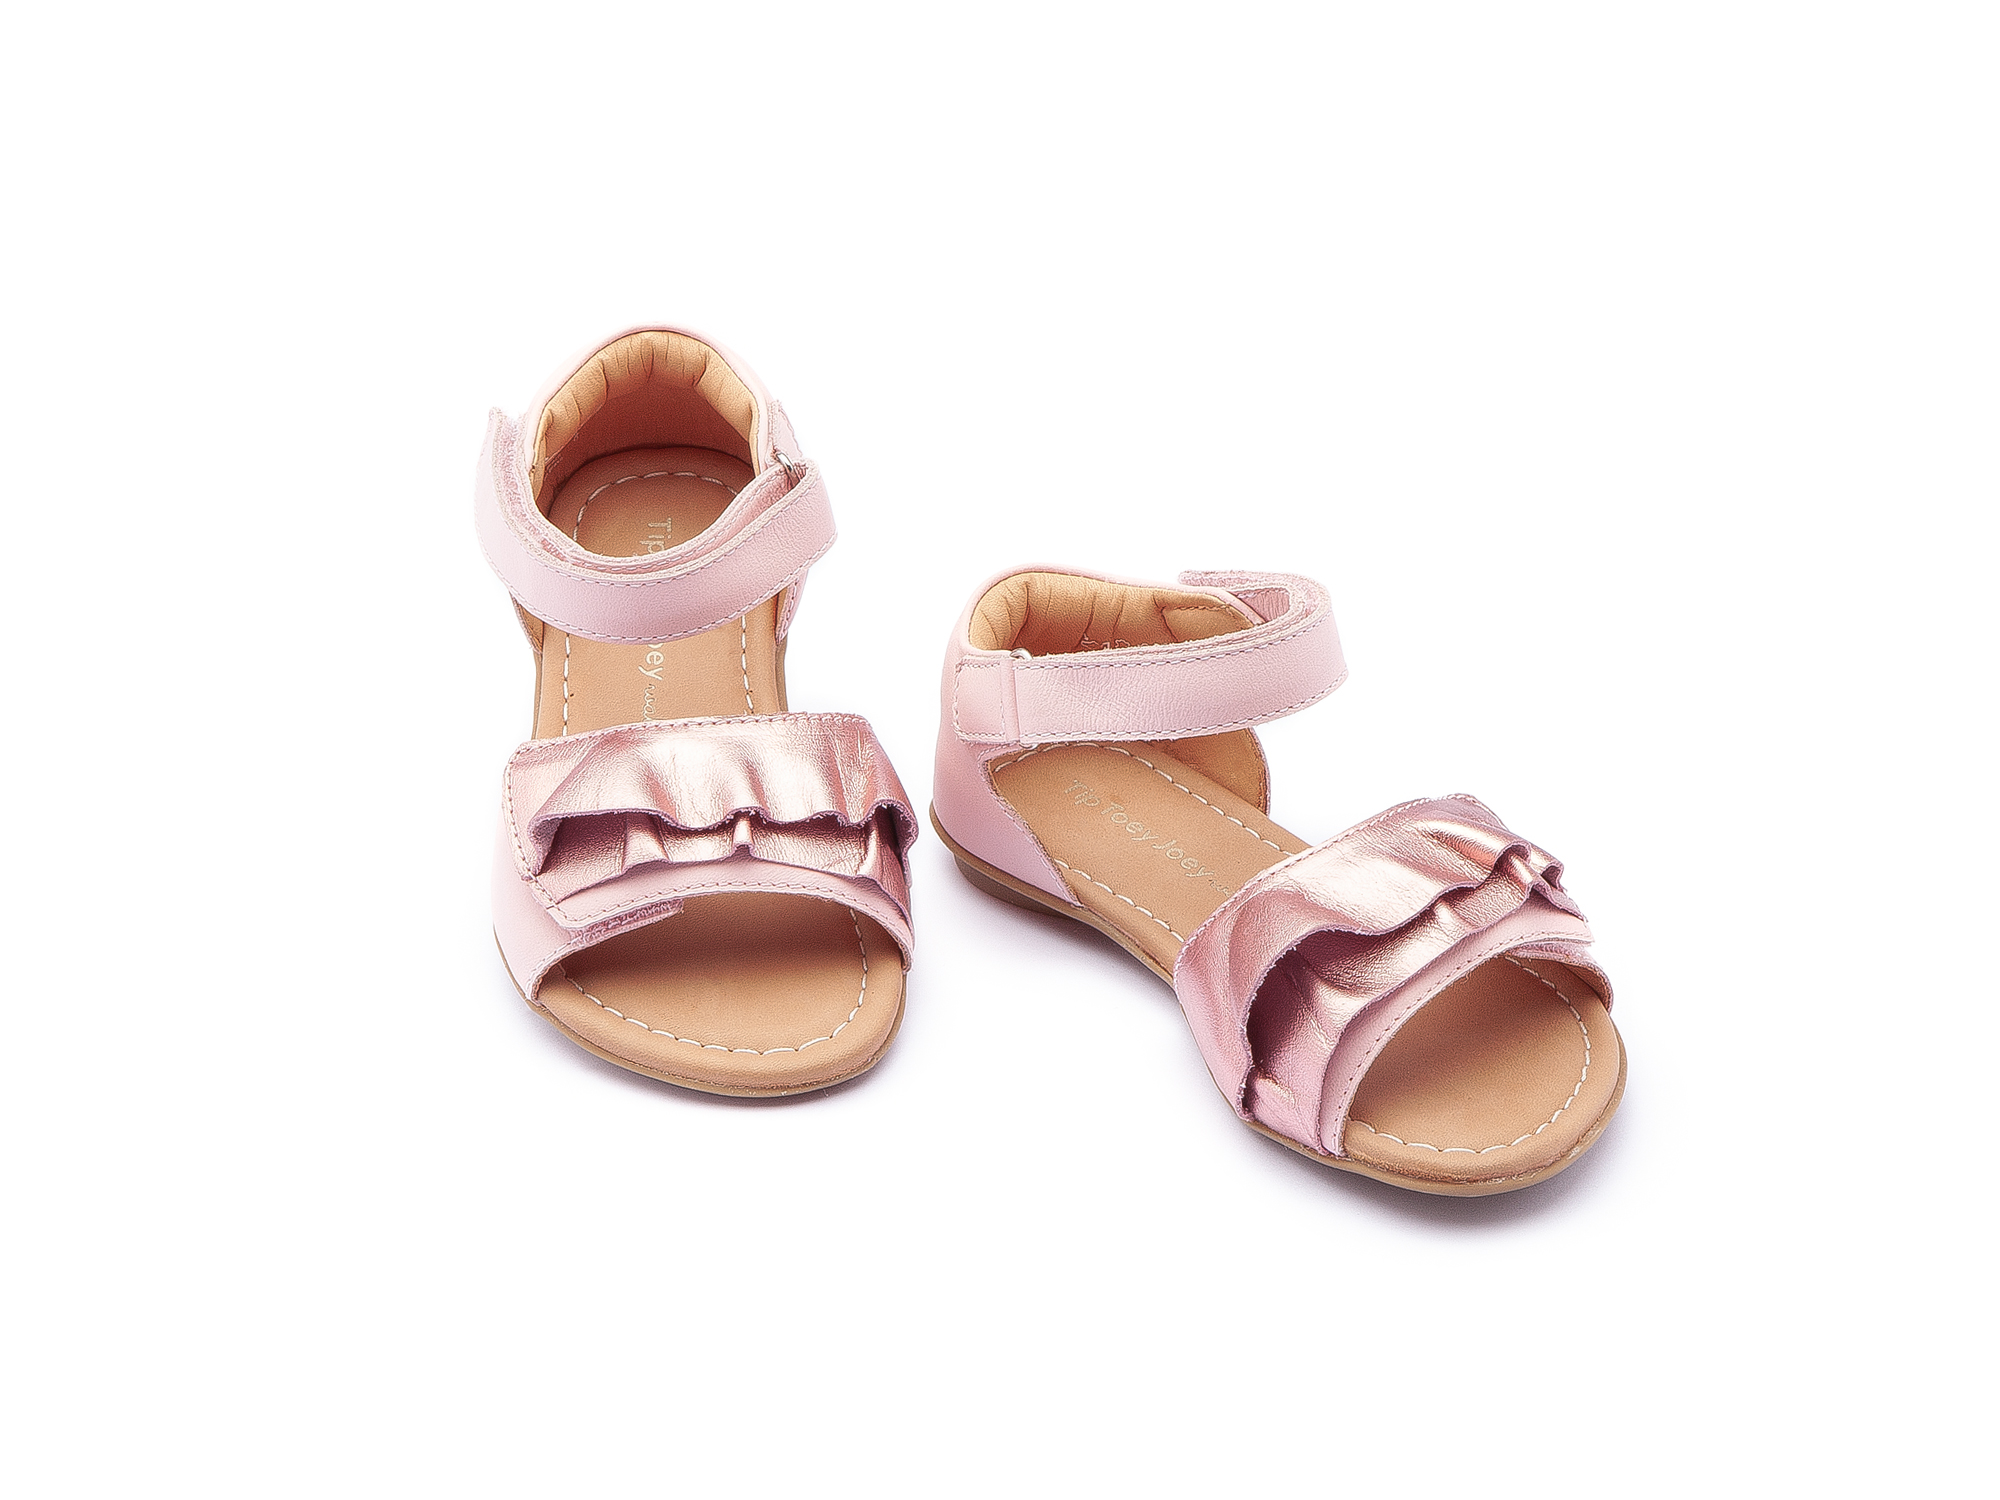 Sandália Little Wind Rose Gold/ Blossom Pink Toddler 2 à 4 anos - 1